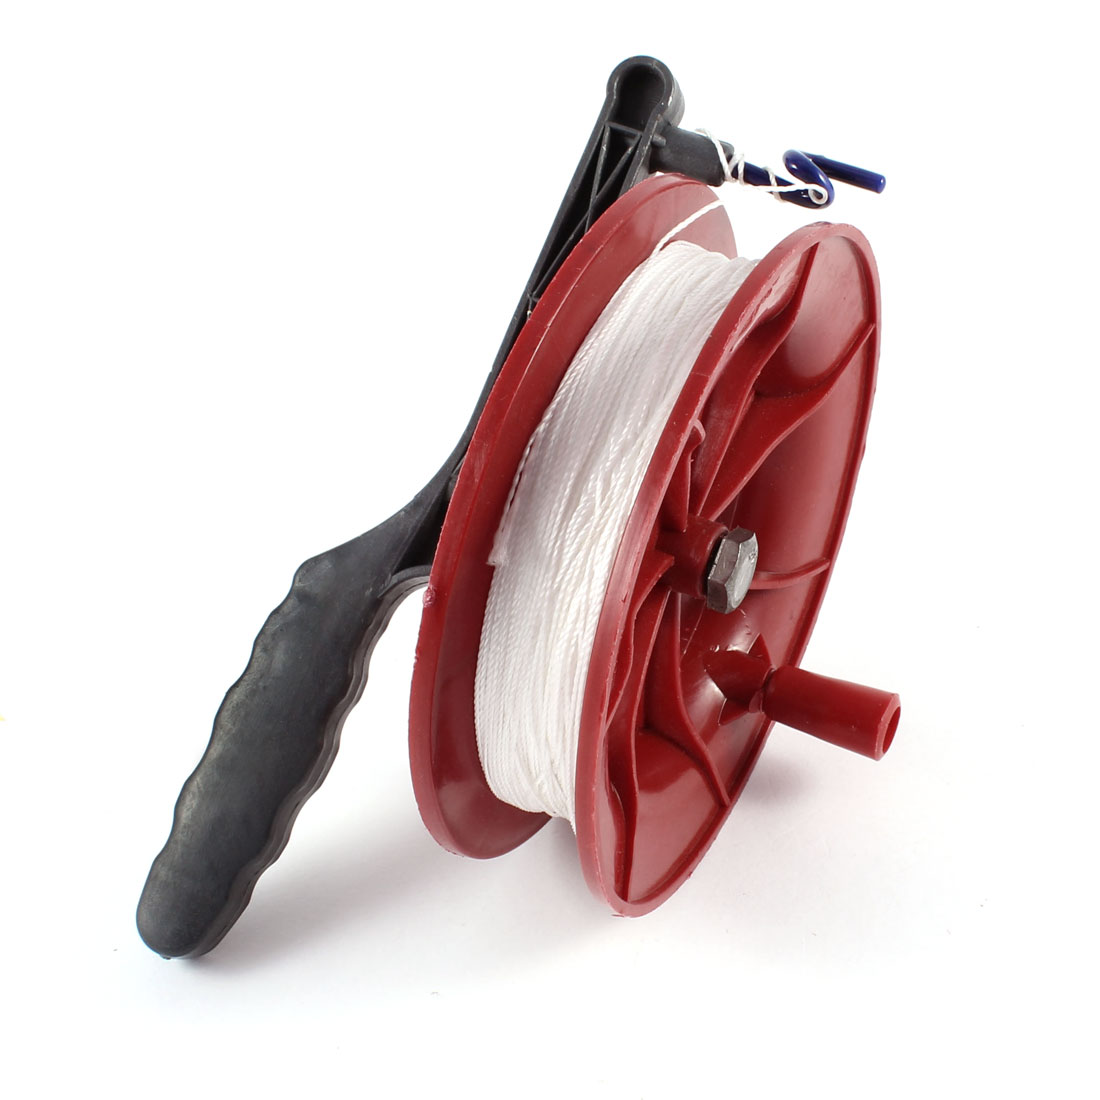 "Outdoor Nylon String 4.9"" Diameter Plastic Round Spool Kite Reel Winder"